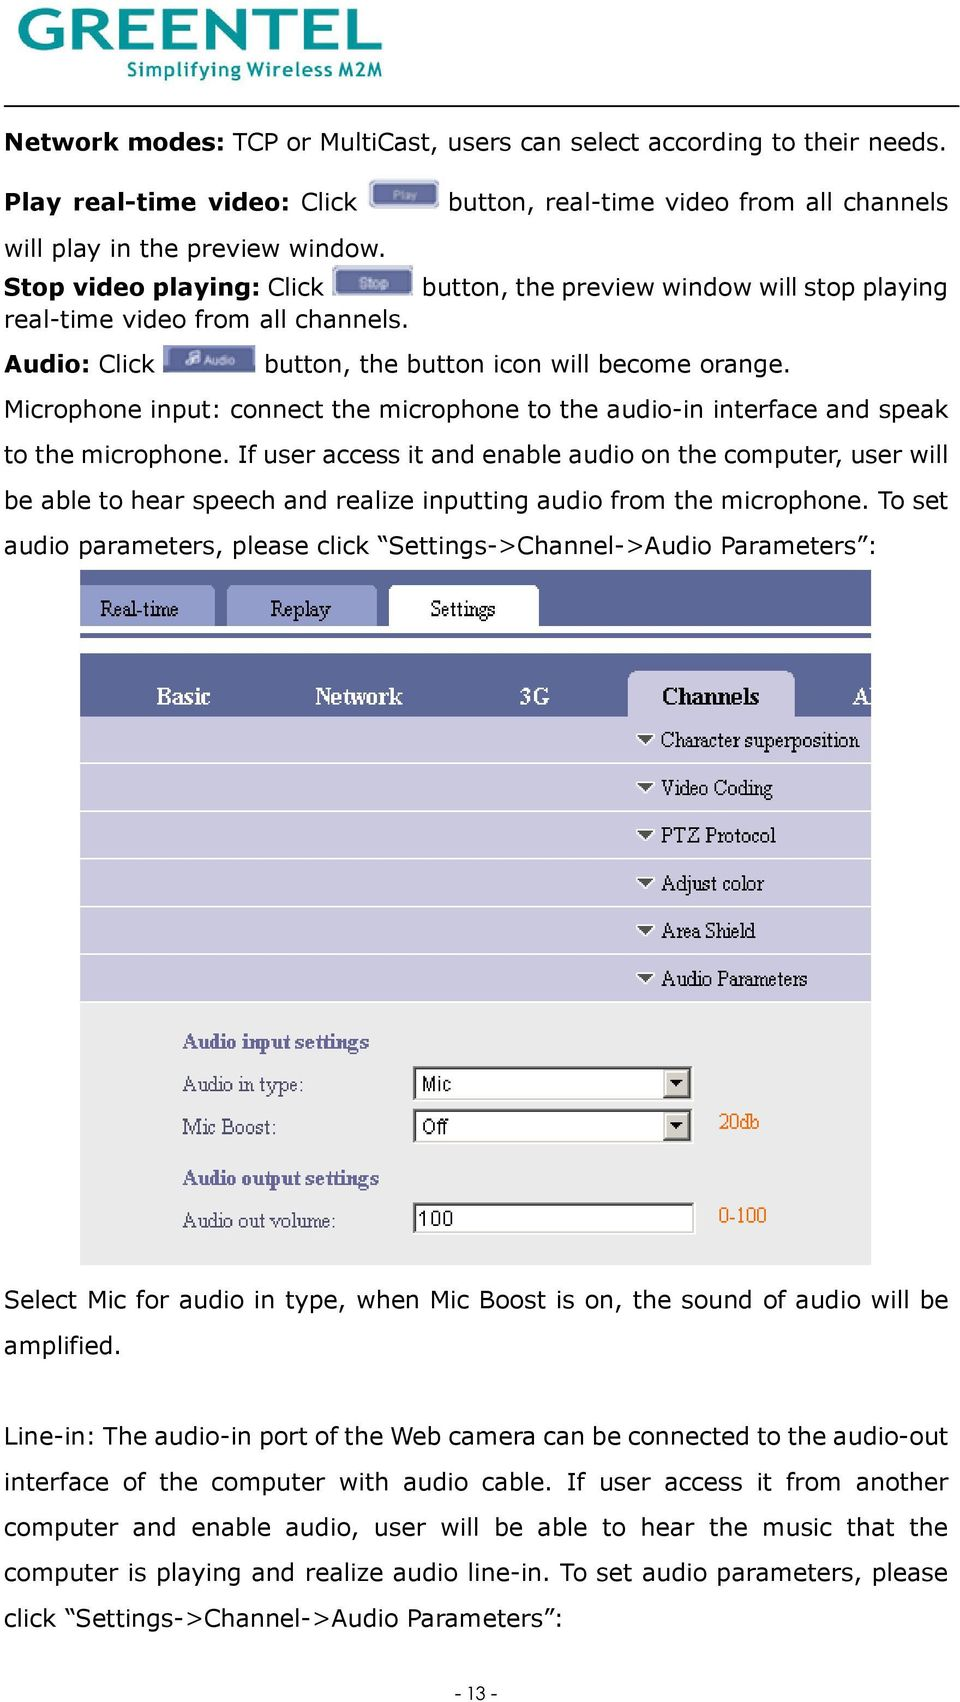 Microphone input: connect the microphone to the audio-in interface and speak to the microphone.